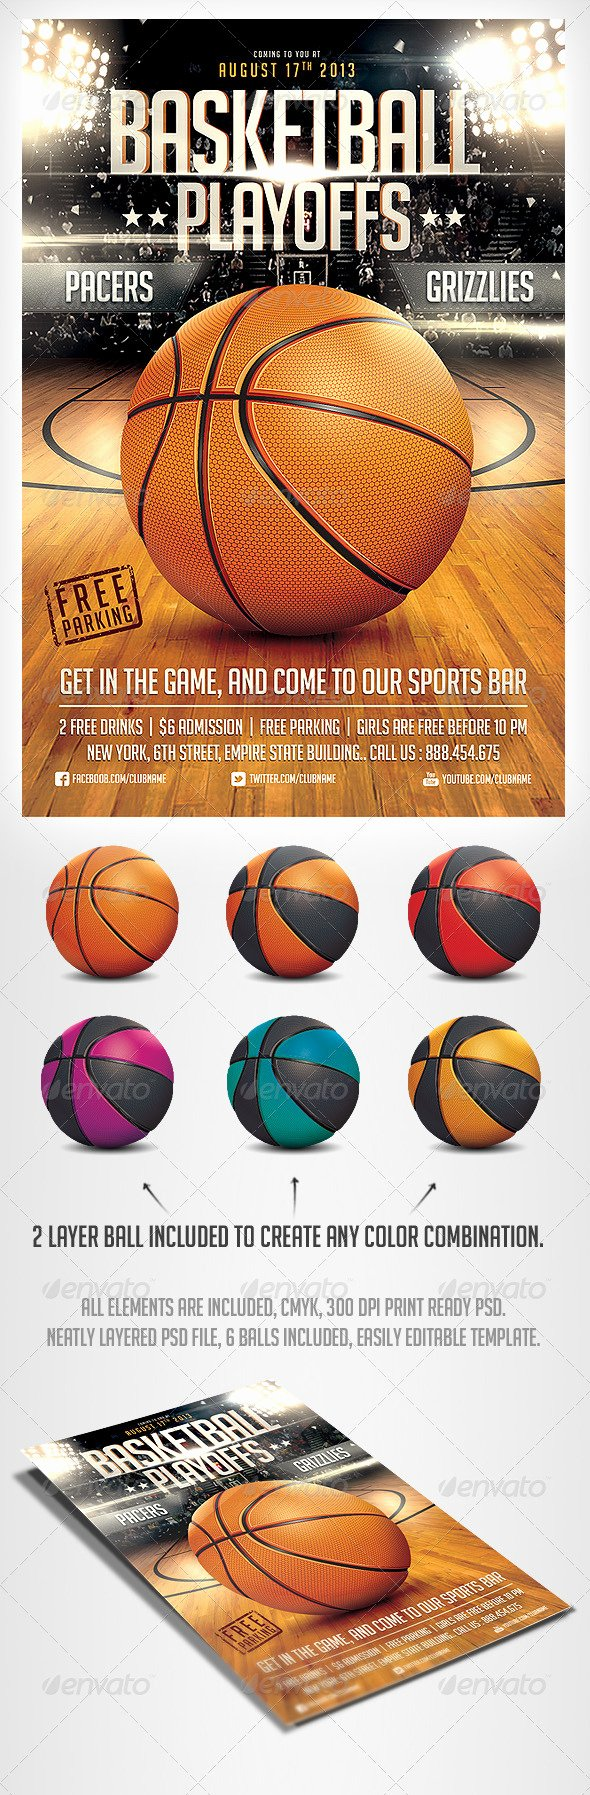 Free Basketball Flyer Template Unique Basketball Game Flyer Psd Template Sports events